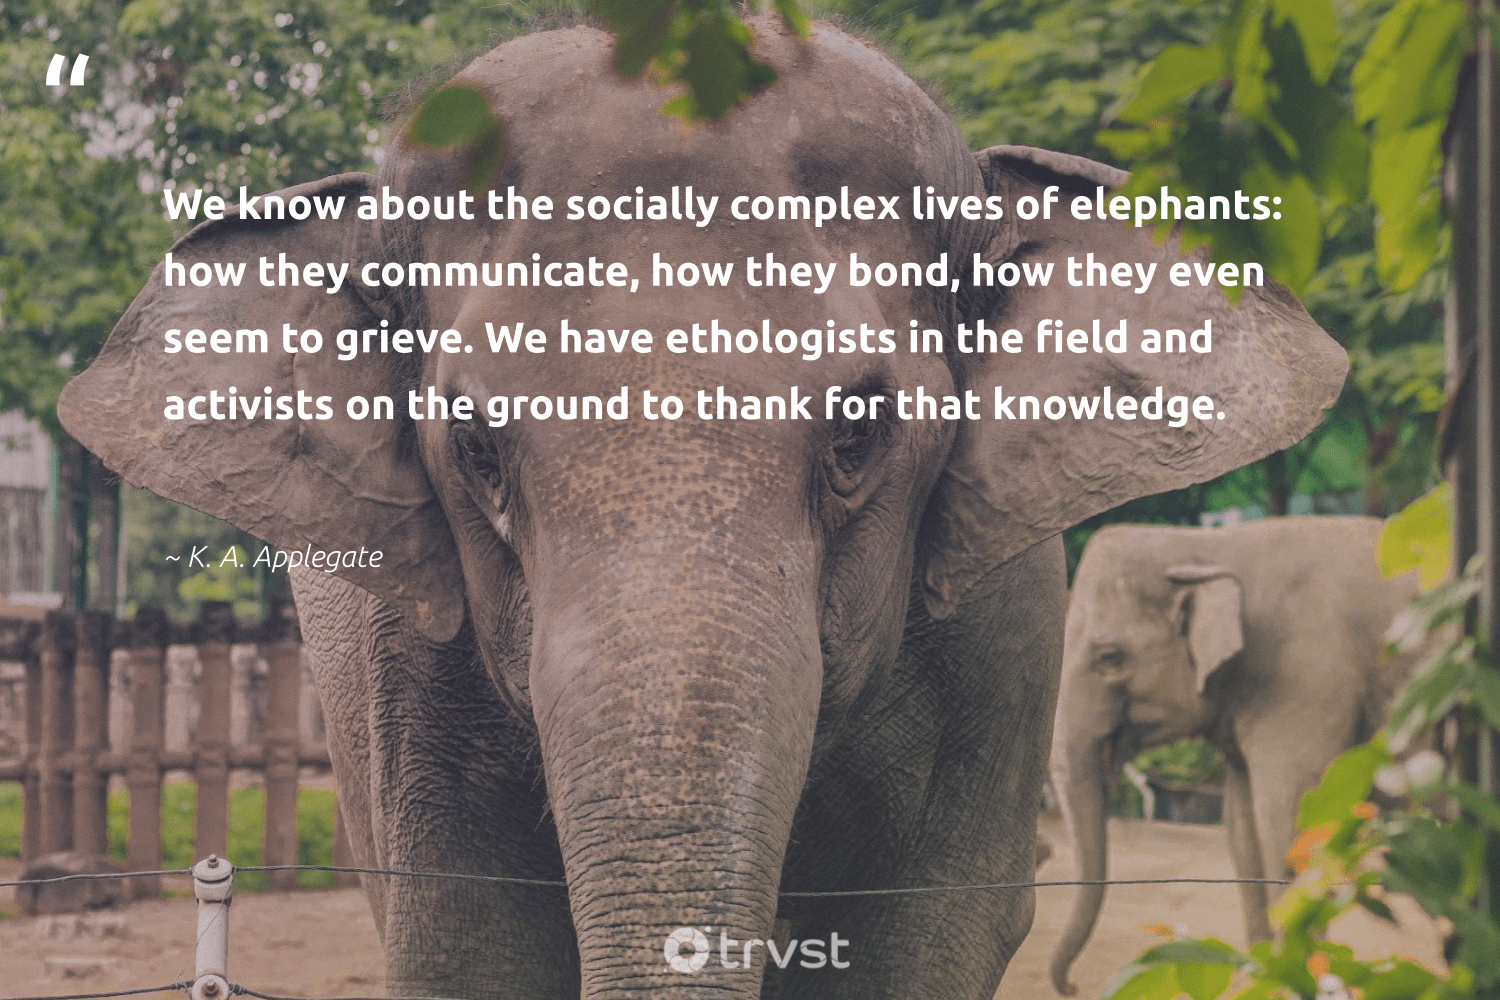 """""""We know about the socially complex lives of elephants: how they communicate, how they bond, how they even seem to grieve. We have ethologists in the field and activists on the ground to thank for that knowledge.""""  - K. A. Applegate #trvst #quotes #elephantlover #dosomething #naturelovers #changetheworld #animals #thinkgreen #wildanimals #bethechange #mammals #dogood"""